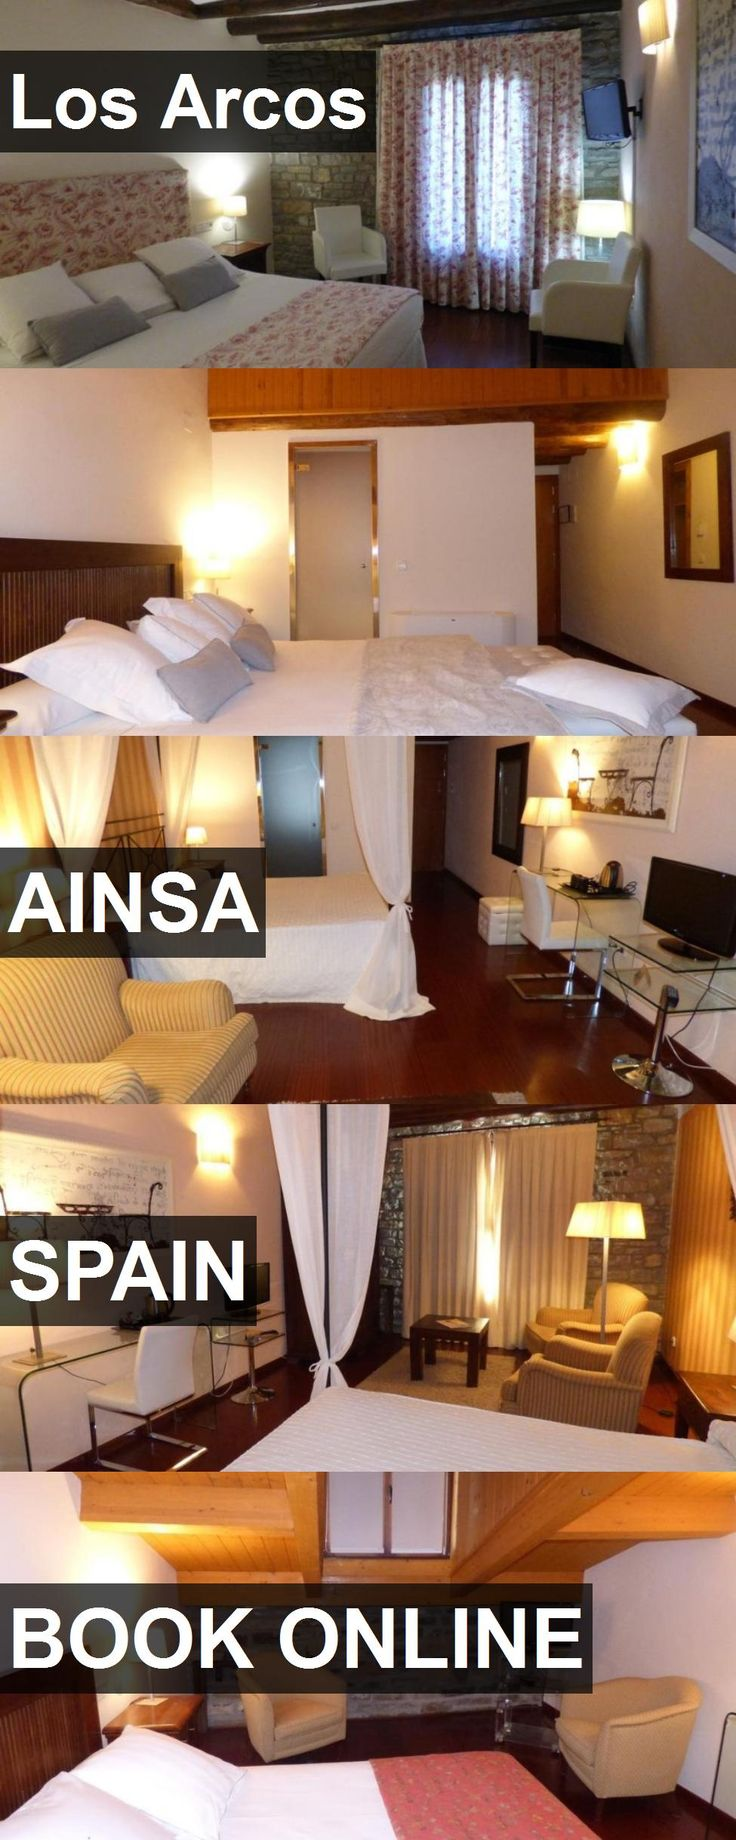 Hotel Los Arcos in Ainsa, Spain. For more information, photos, reviews and best prices please follow the link. #Spain #Ainsa #hotel #travel #vacation